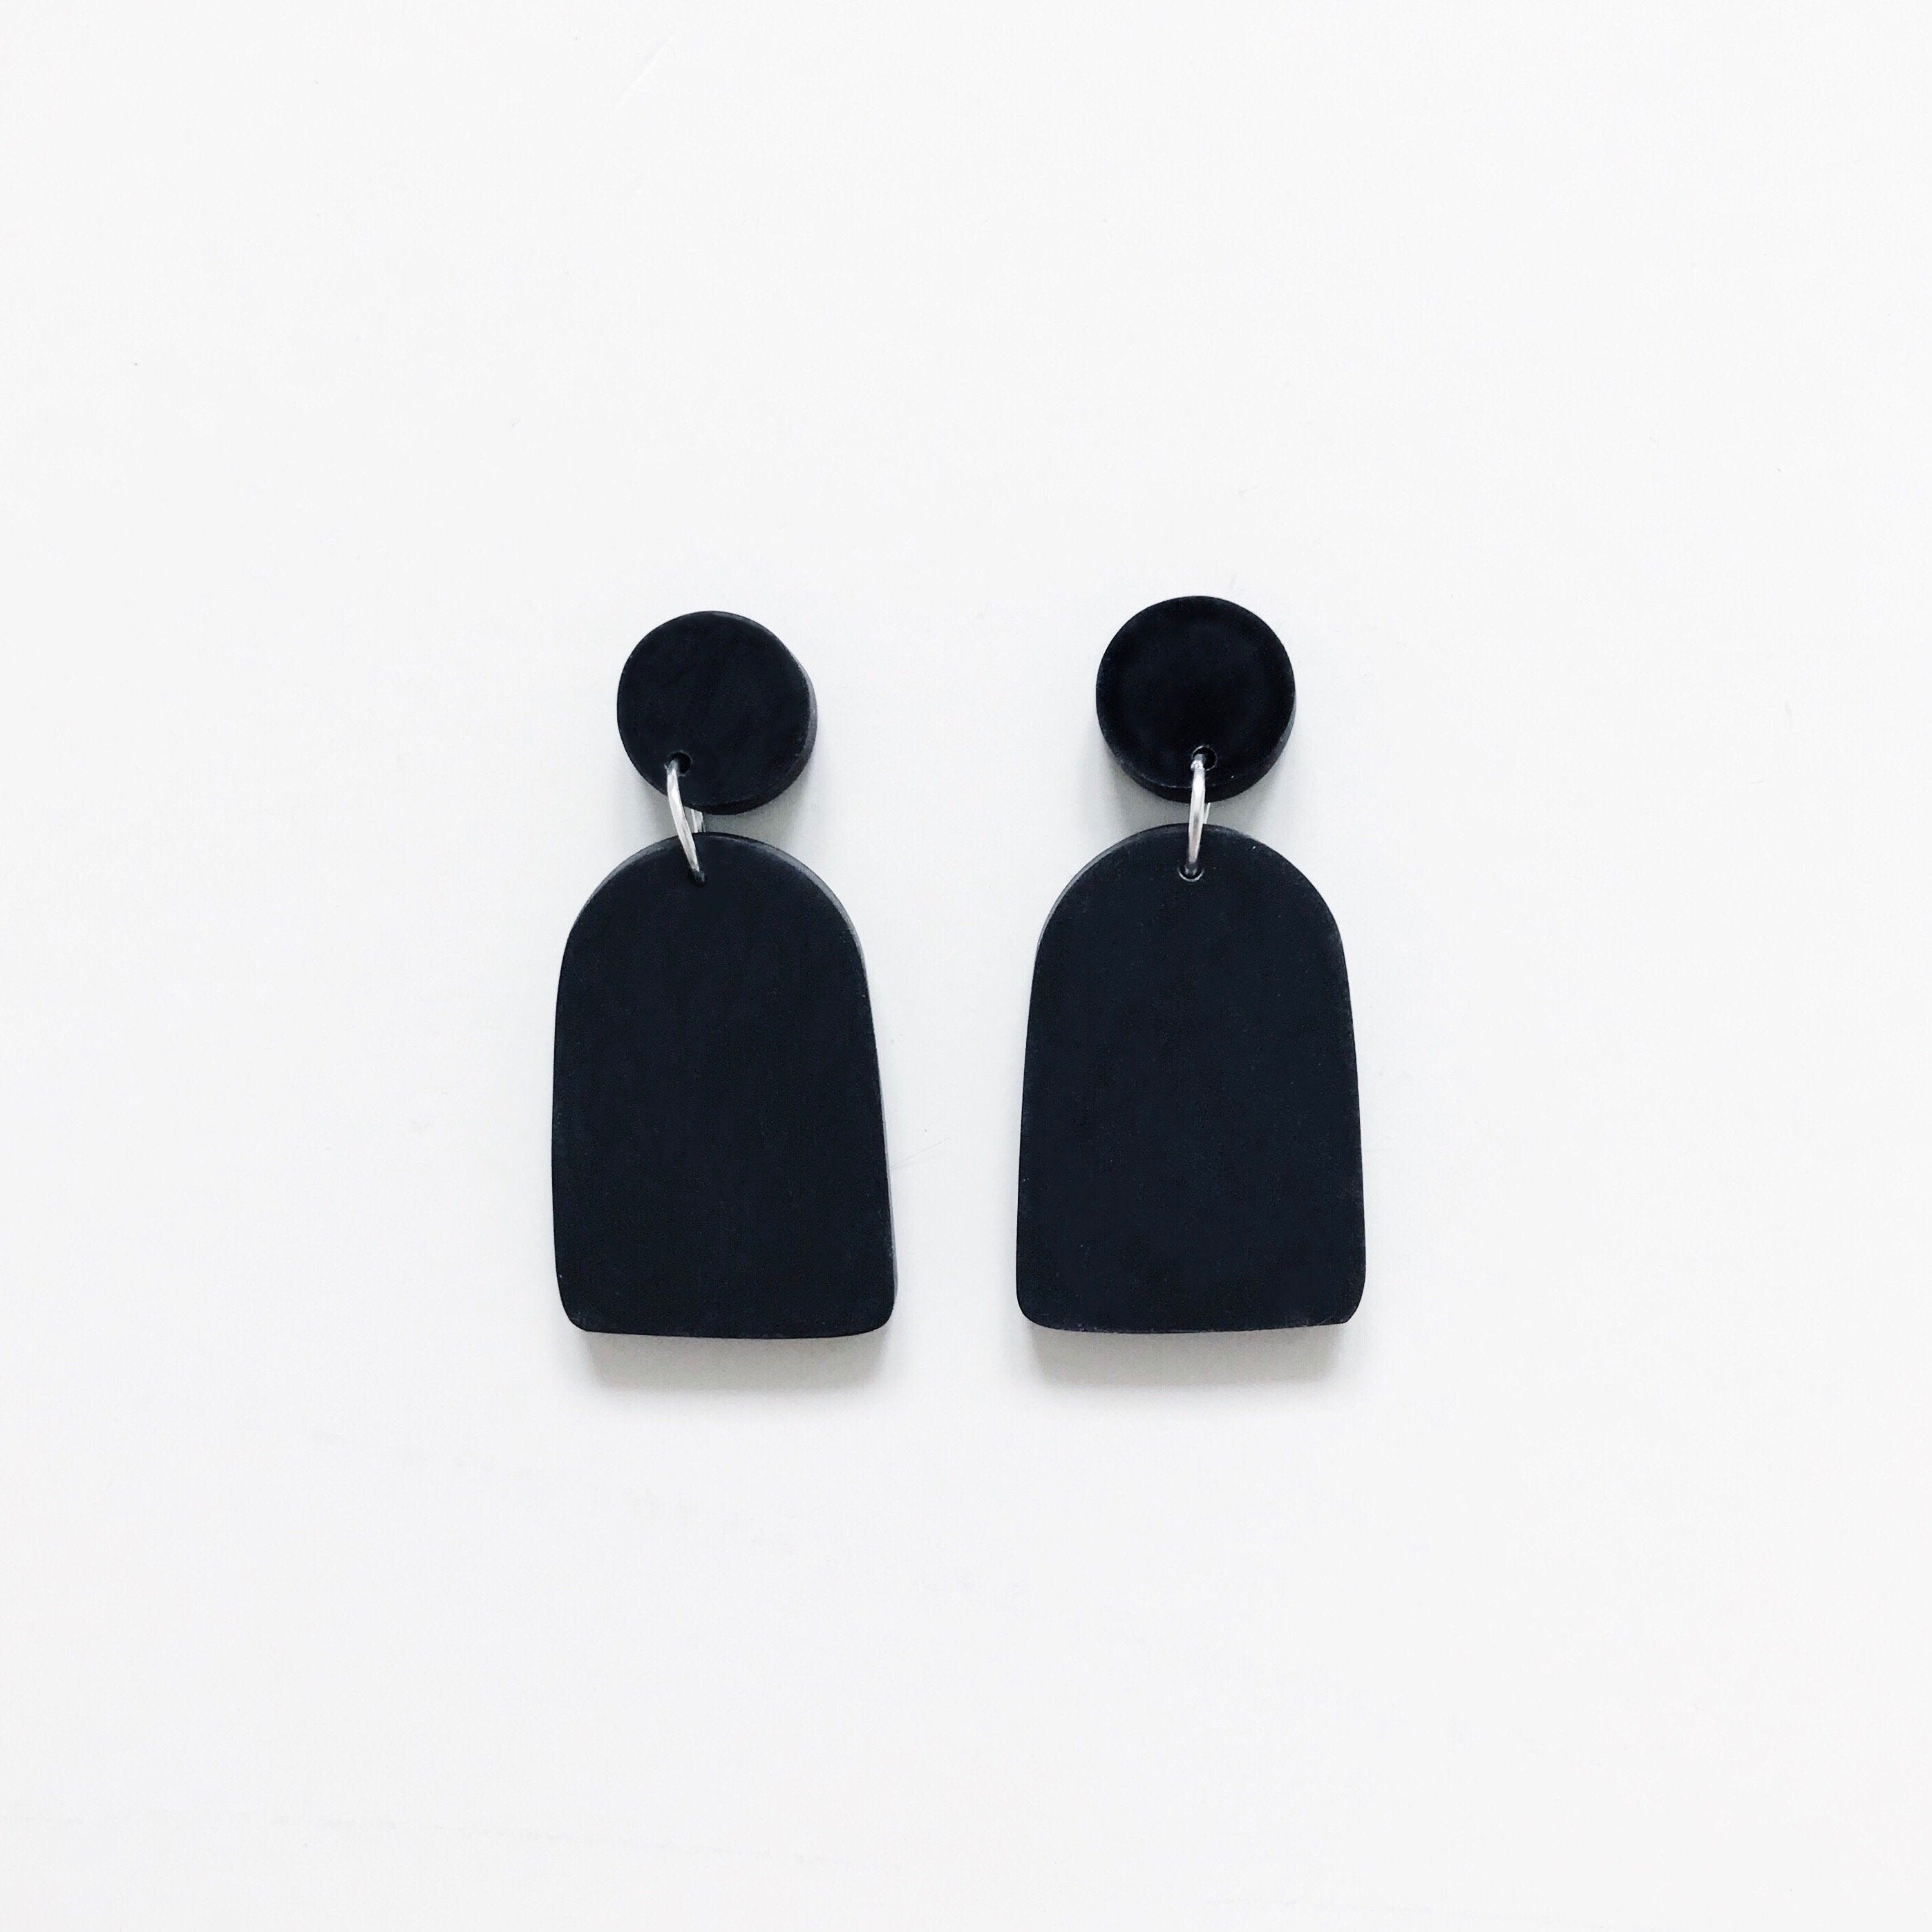 Arch Drop Earrings - Earrings - Anders & Dawn - Naiise